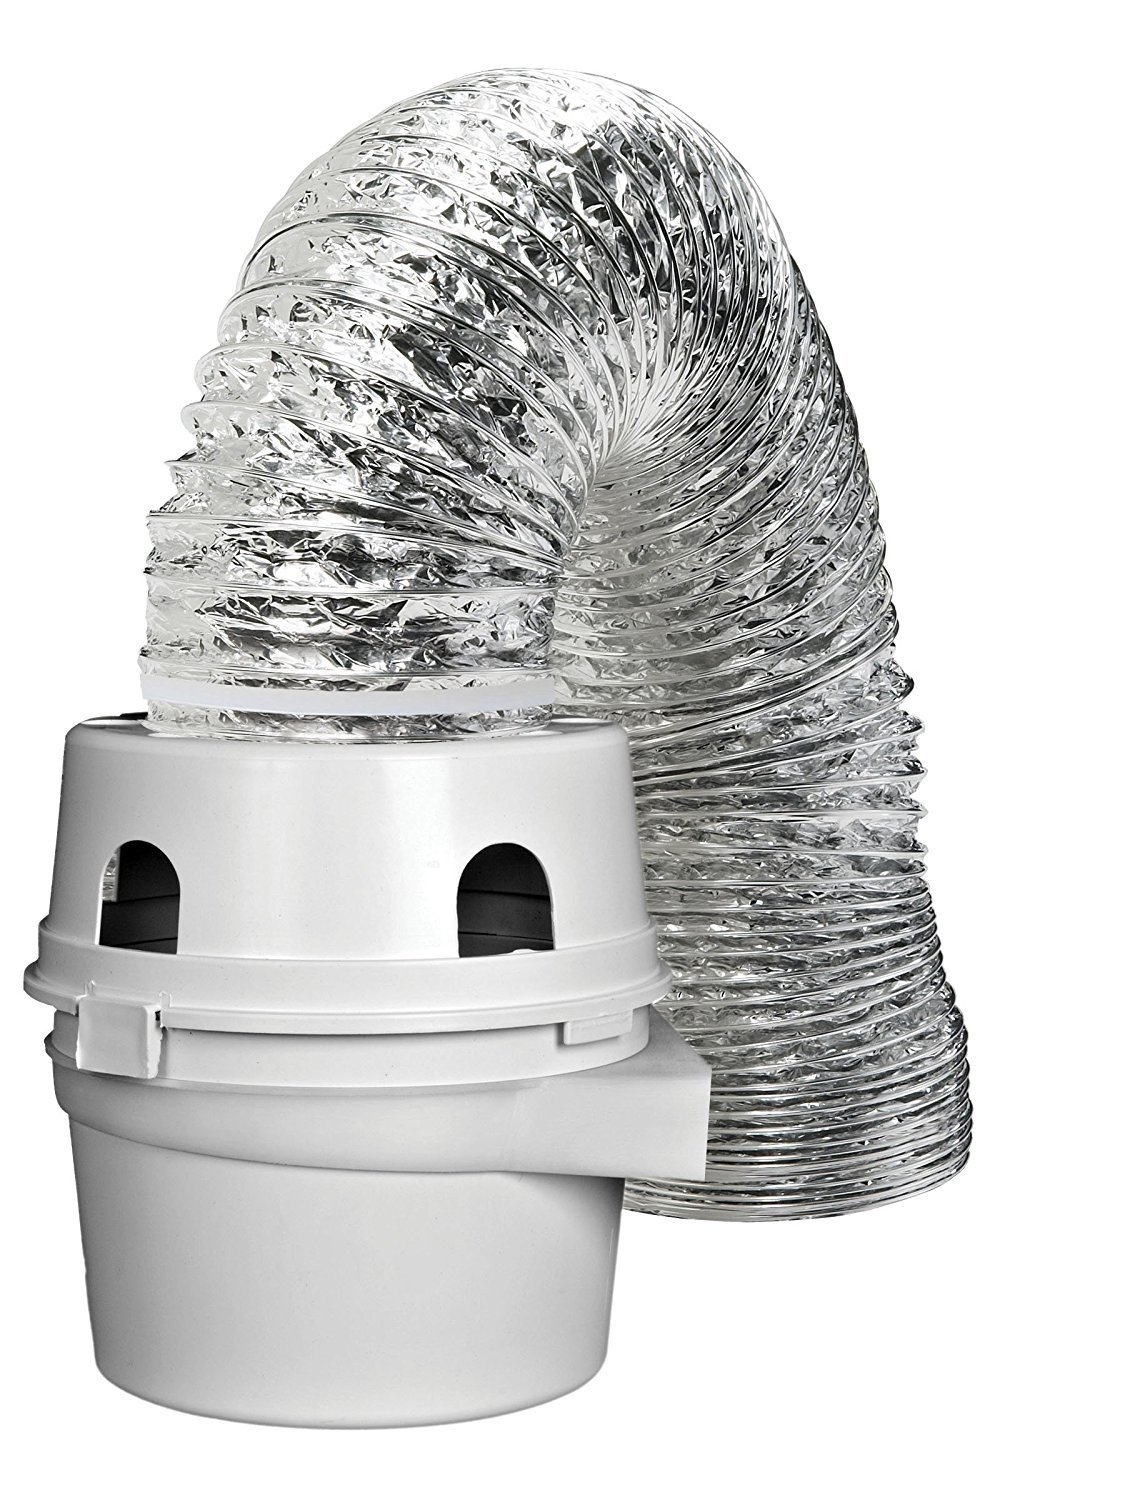 Cheap indoor dryer lint trap find indoor dryer lint trap deals on get quotations amana external dryer ducting hose fits indoor dryer vent kit with 4 inches x 5 publicscrutiny Choice Image